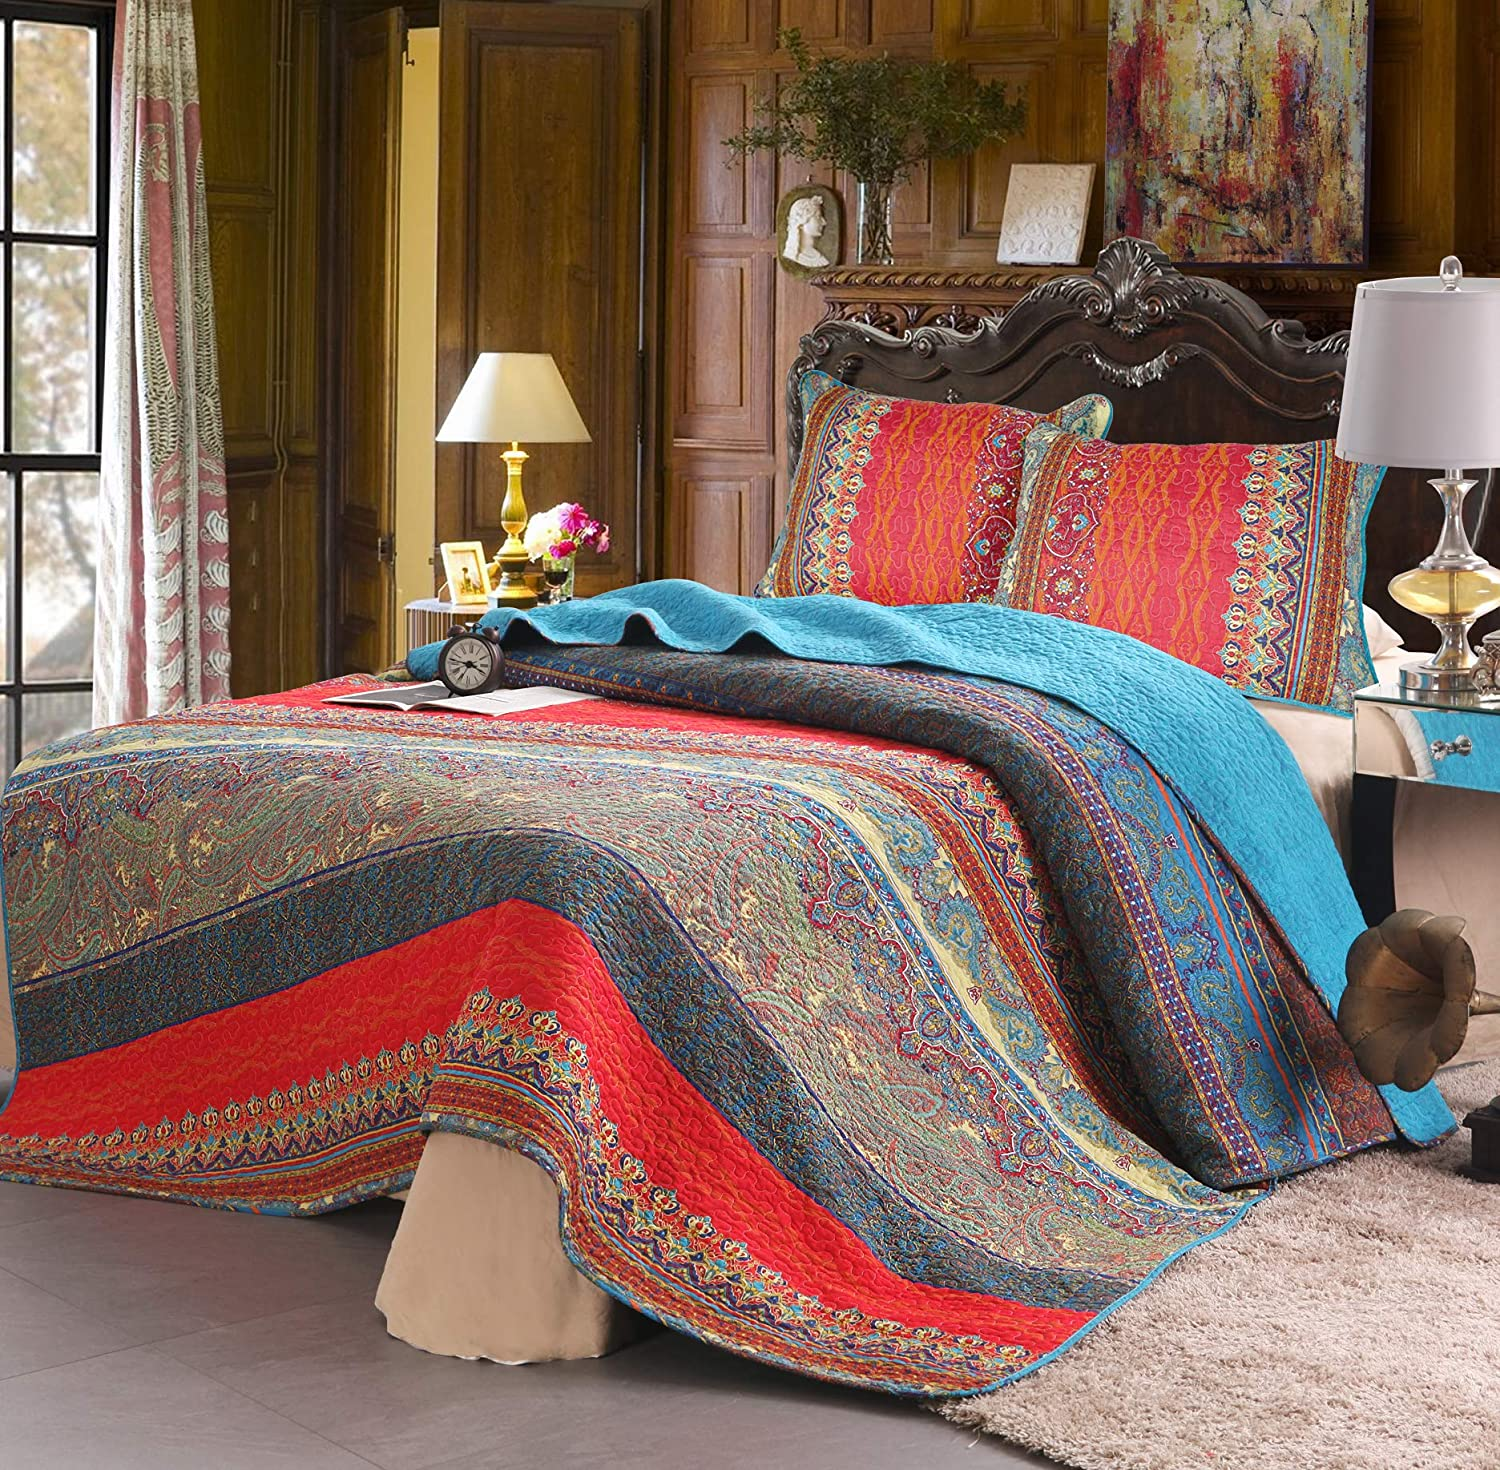 Boho Striped Queen Size Quilt Set/Bedspread